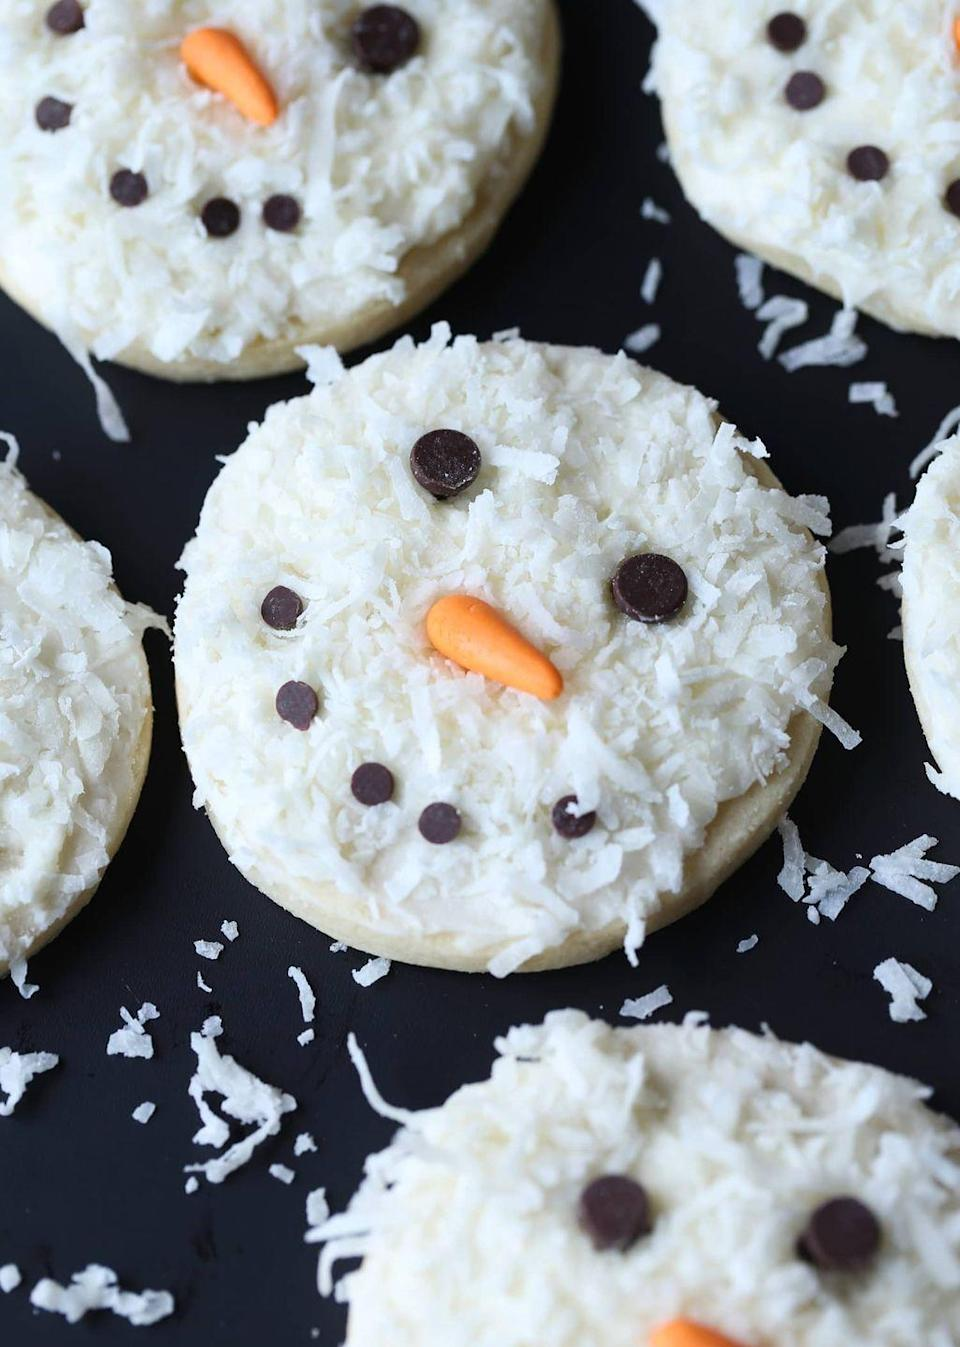 """<p>Frosty has never looked (or tasted!) this good. Enlist your little ones to help decorate the smiling faces.</p><p><strong>Get the recipe at <a href=""""https://cookiesandcups.com/coconut-snowman-cookies/"""" rel=""""nofollow noopener"""" target=""""_blank"""" data-ylk=""""slk:Cookies and Cups"""" class=""""link rapid-noclick-resp"""">Cookies and Cups</a>.</strong></p><p><strong><strong><a class=""""link rapid-noclick-resp"""" href=""""https://www.amazon.com/Nordic-Ware-Natural-Aluminum-Commercial/dp/B0049C2S32?tag=syn-yahoo-20&ascsubtag=%5Bartid%7C10050.g.647%5Bsrc%7Cyahoo-us"""" rel=""""nofollow noopener"""" target=""""_blank"""" data-ylk=""""slk:SHOP BAKING SHEETS"""">SHOP BAKING SHEETS</a></strong><br></strong></p>"""